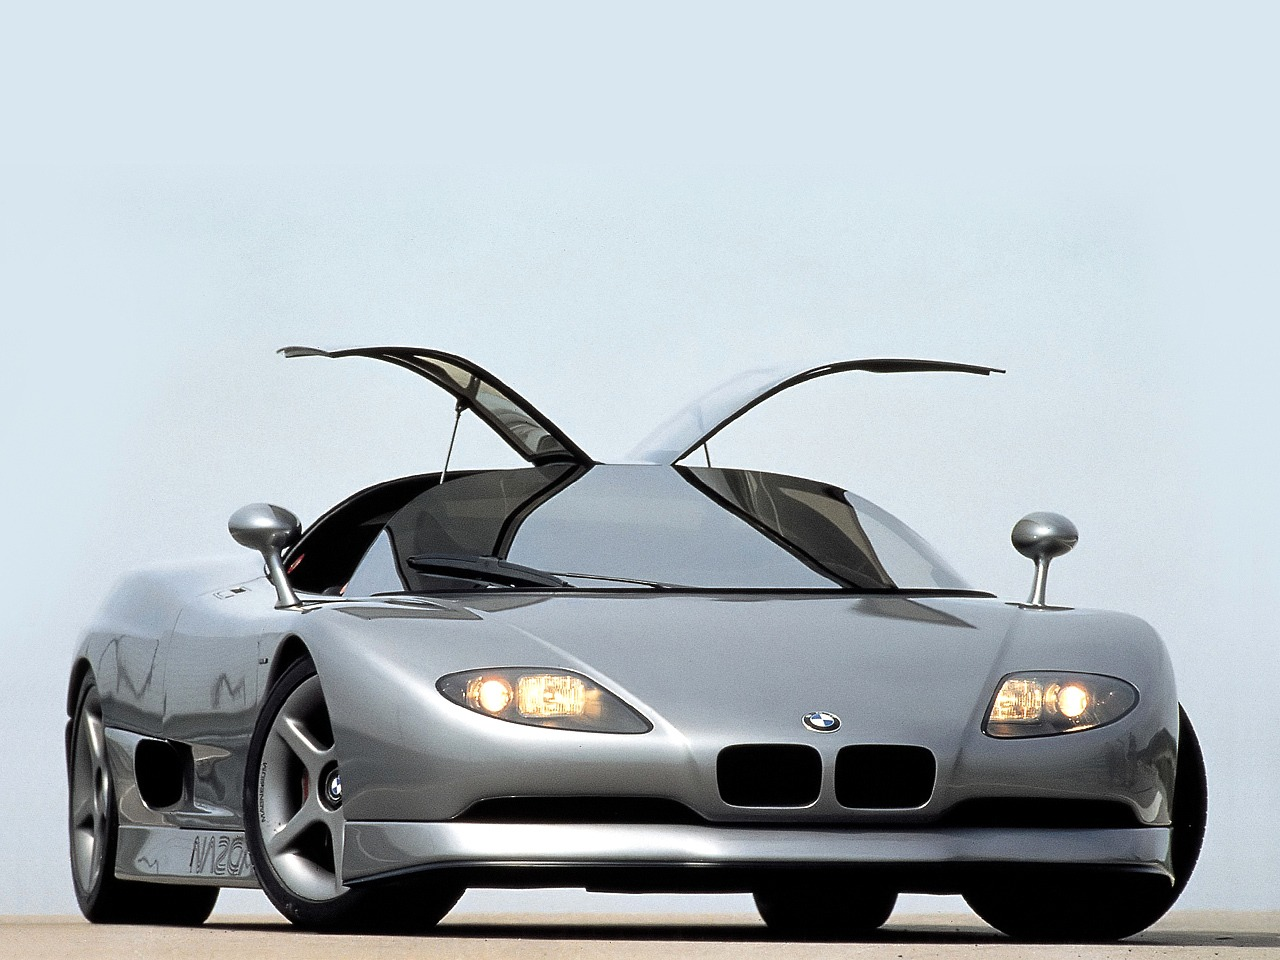 Most Expensive Cars >> BMW Nazca M12 (1991) – Old Concept Cars